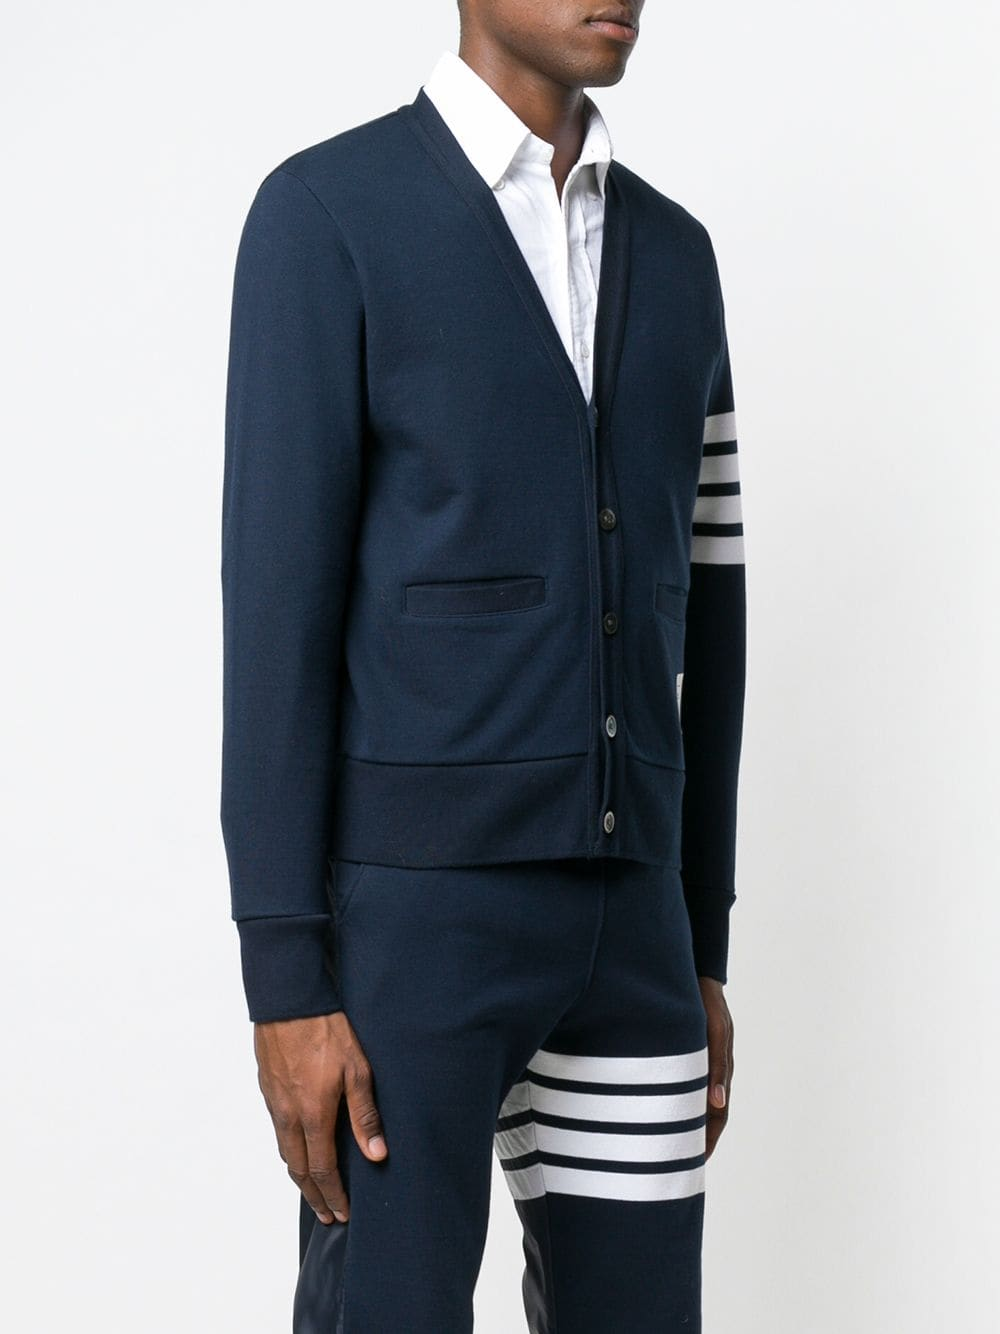 THOM BROWNE MEN V NECK CARDIGAN IN CLASSIC LOOP BACK W/ ENGINEERED 4 BAR